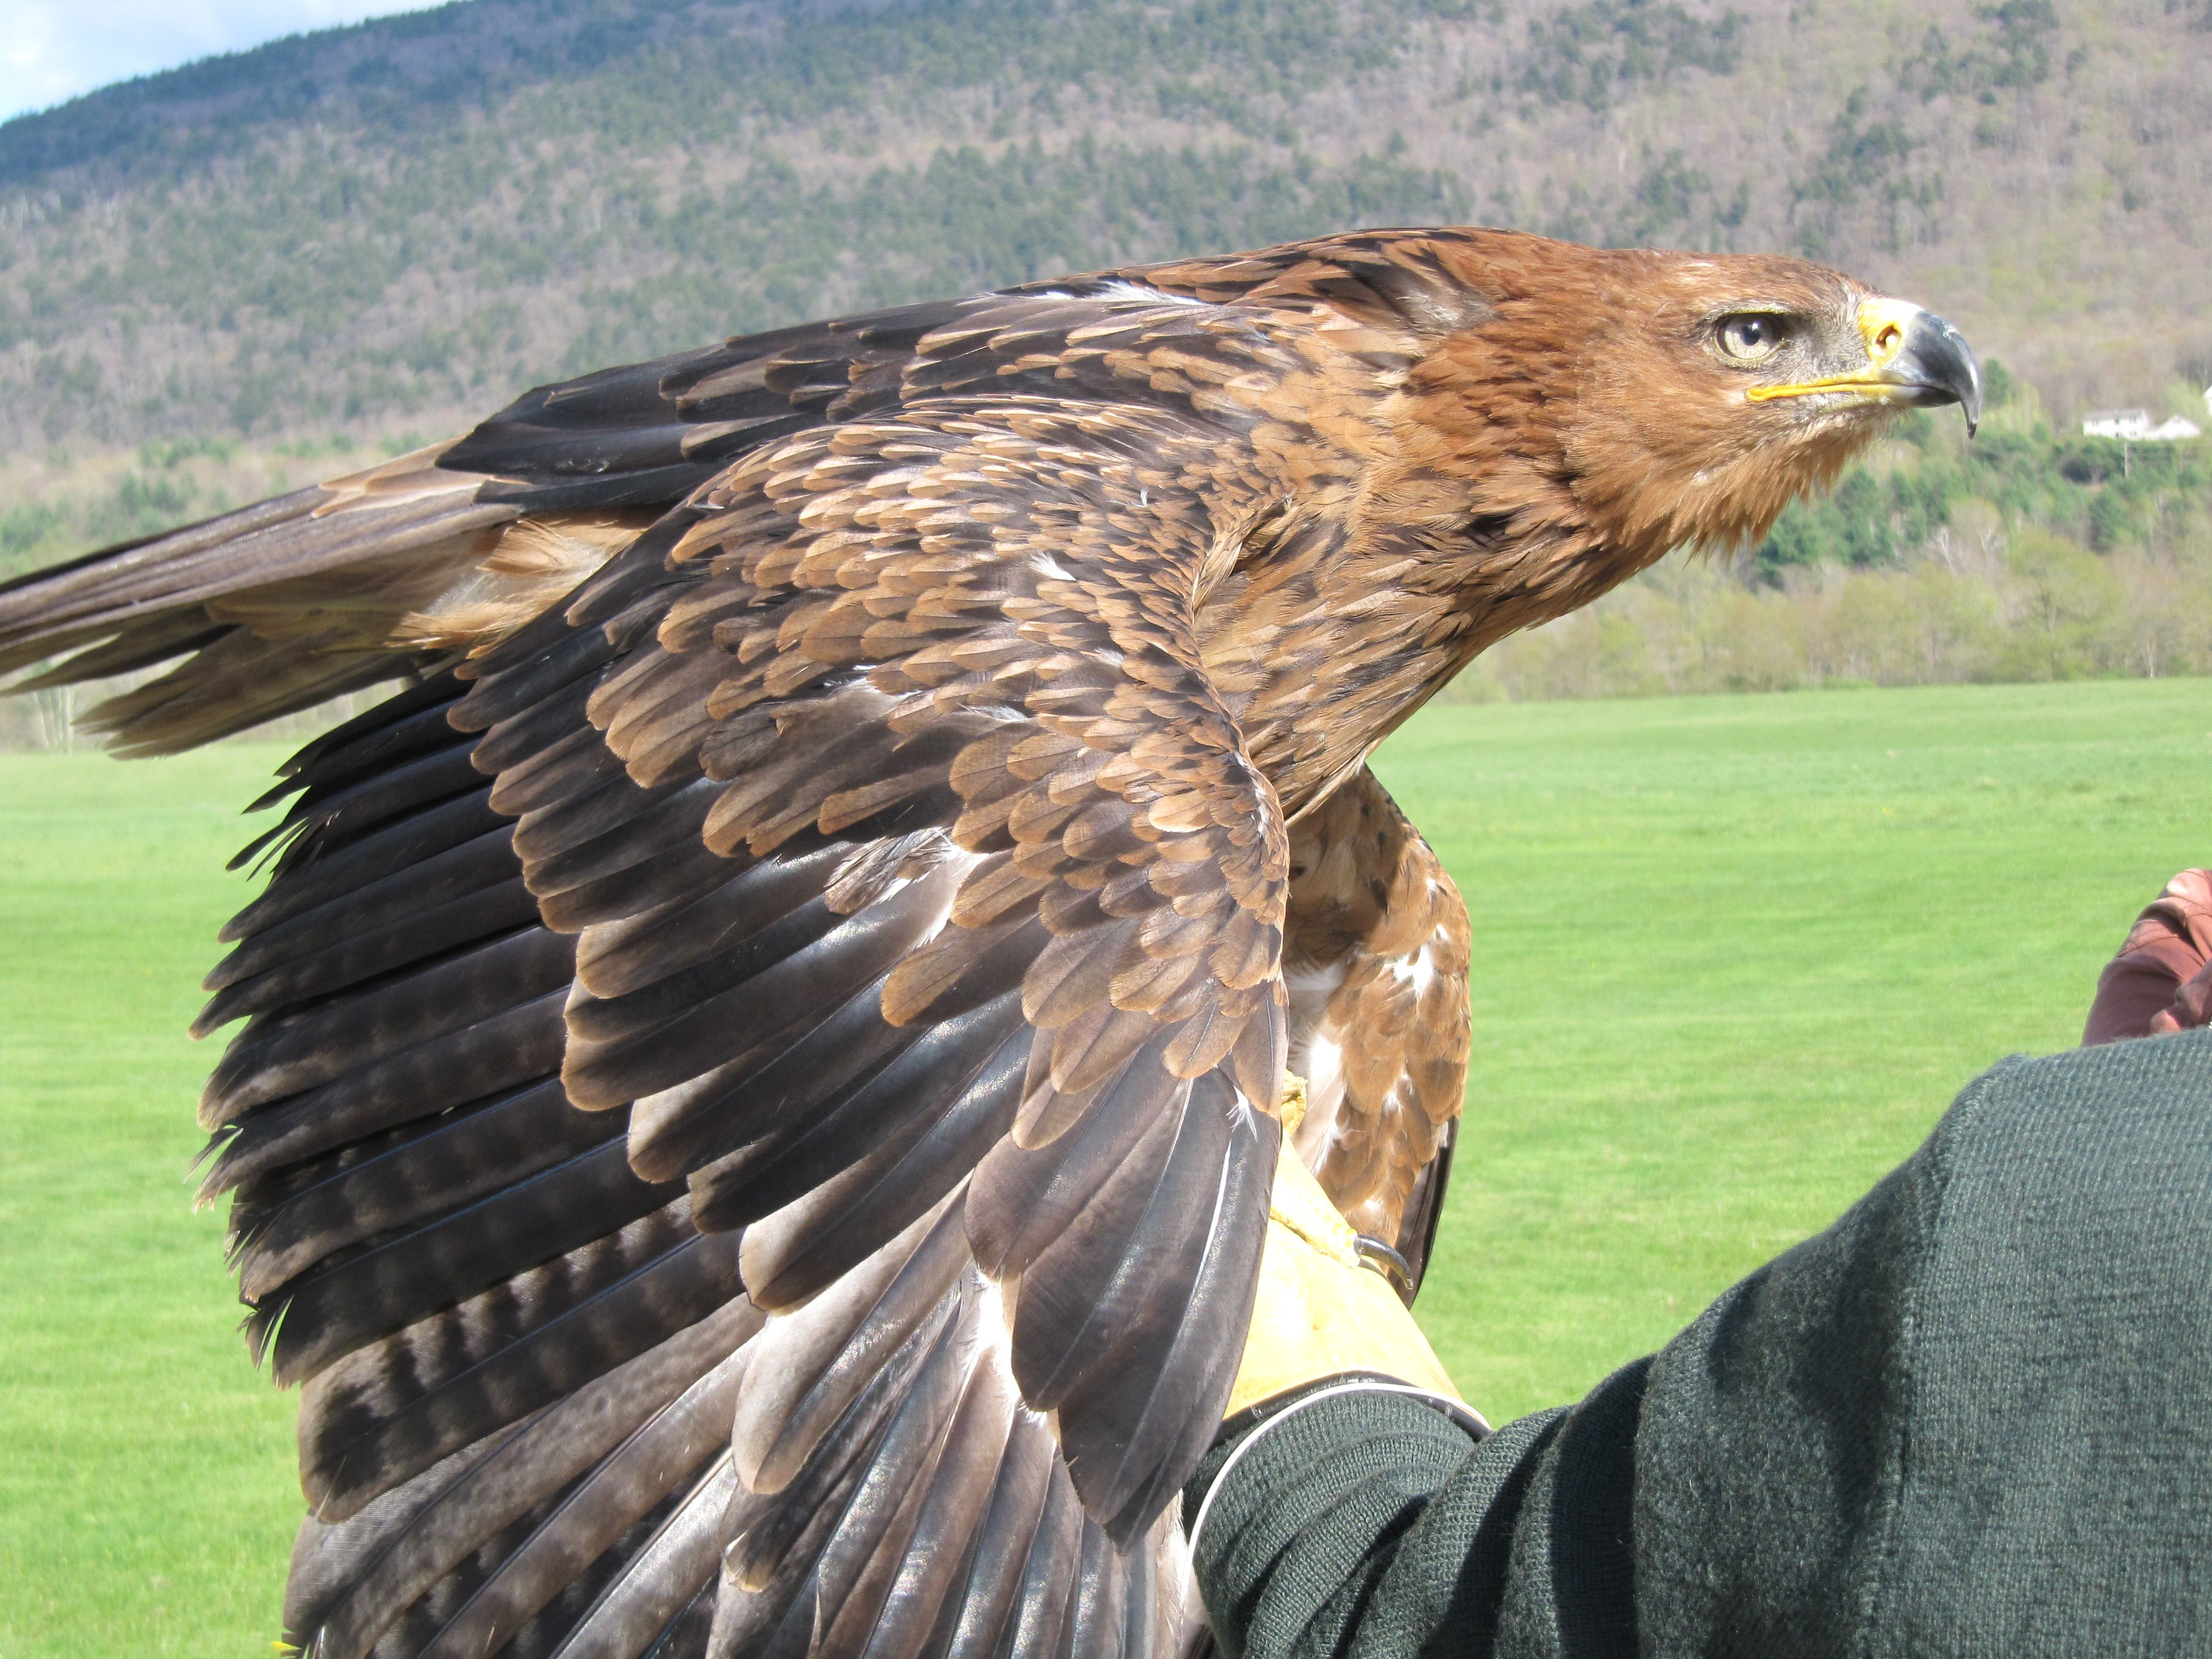 Image Result For The Equinox Manchester Vermont School Of Falconry Manchester Vermont Bird People Bald Eagle